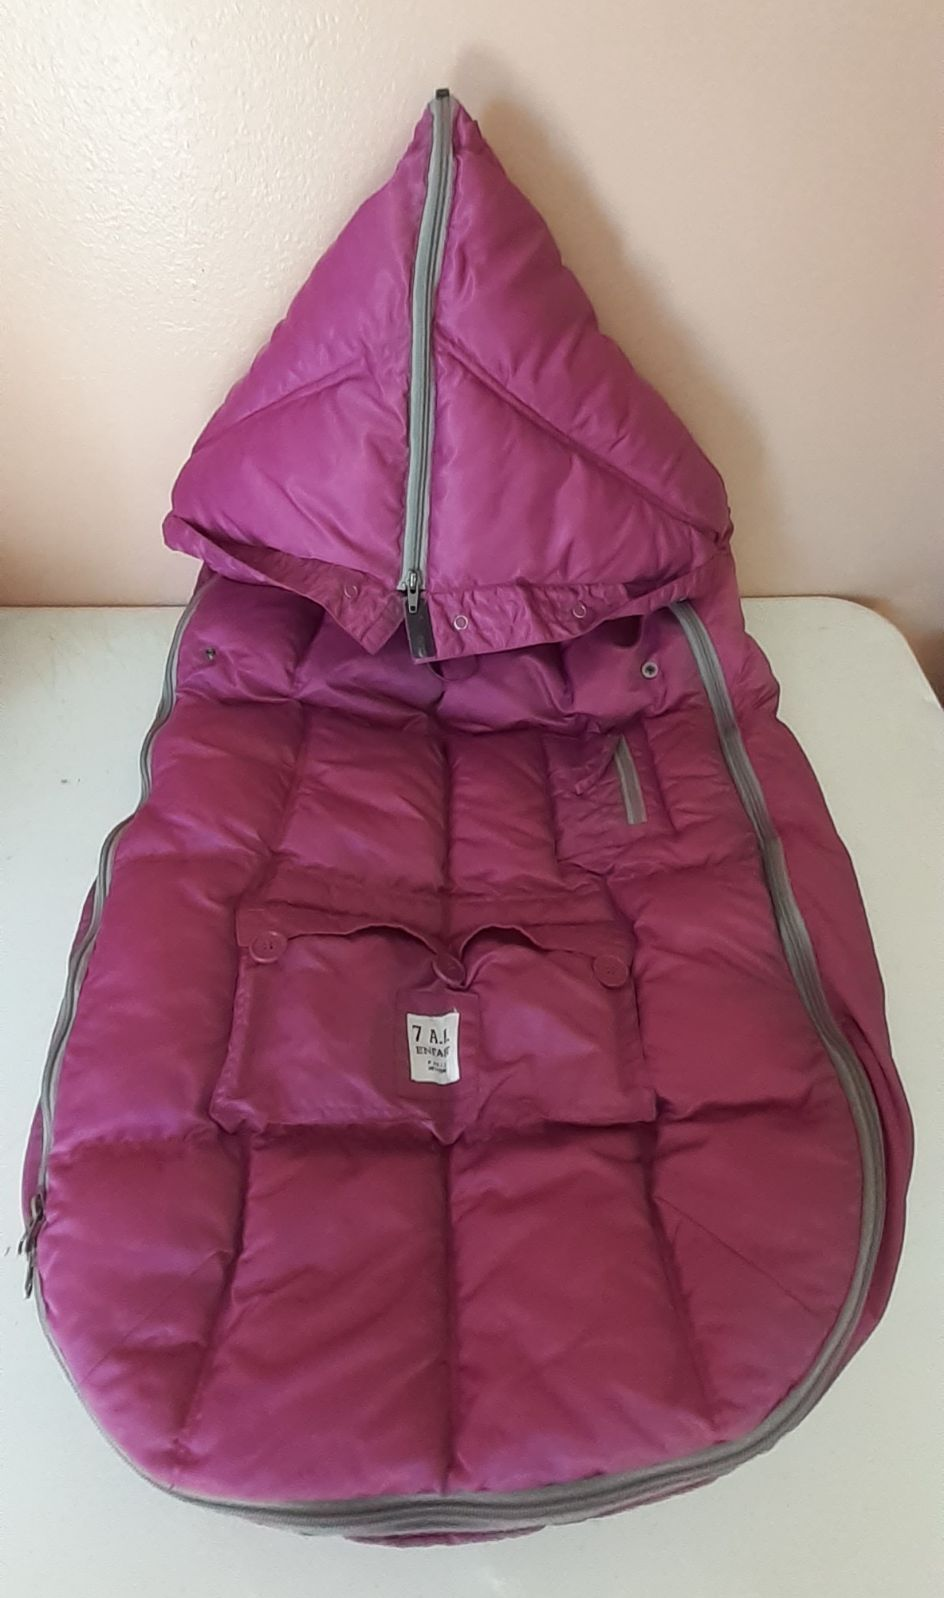 7 A.M. ENFANT le sac igloo LS500 large